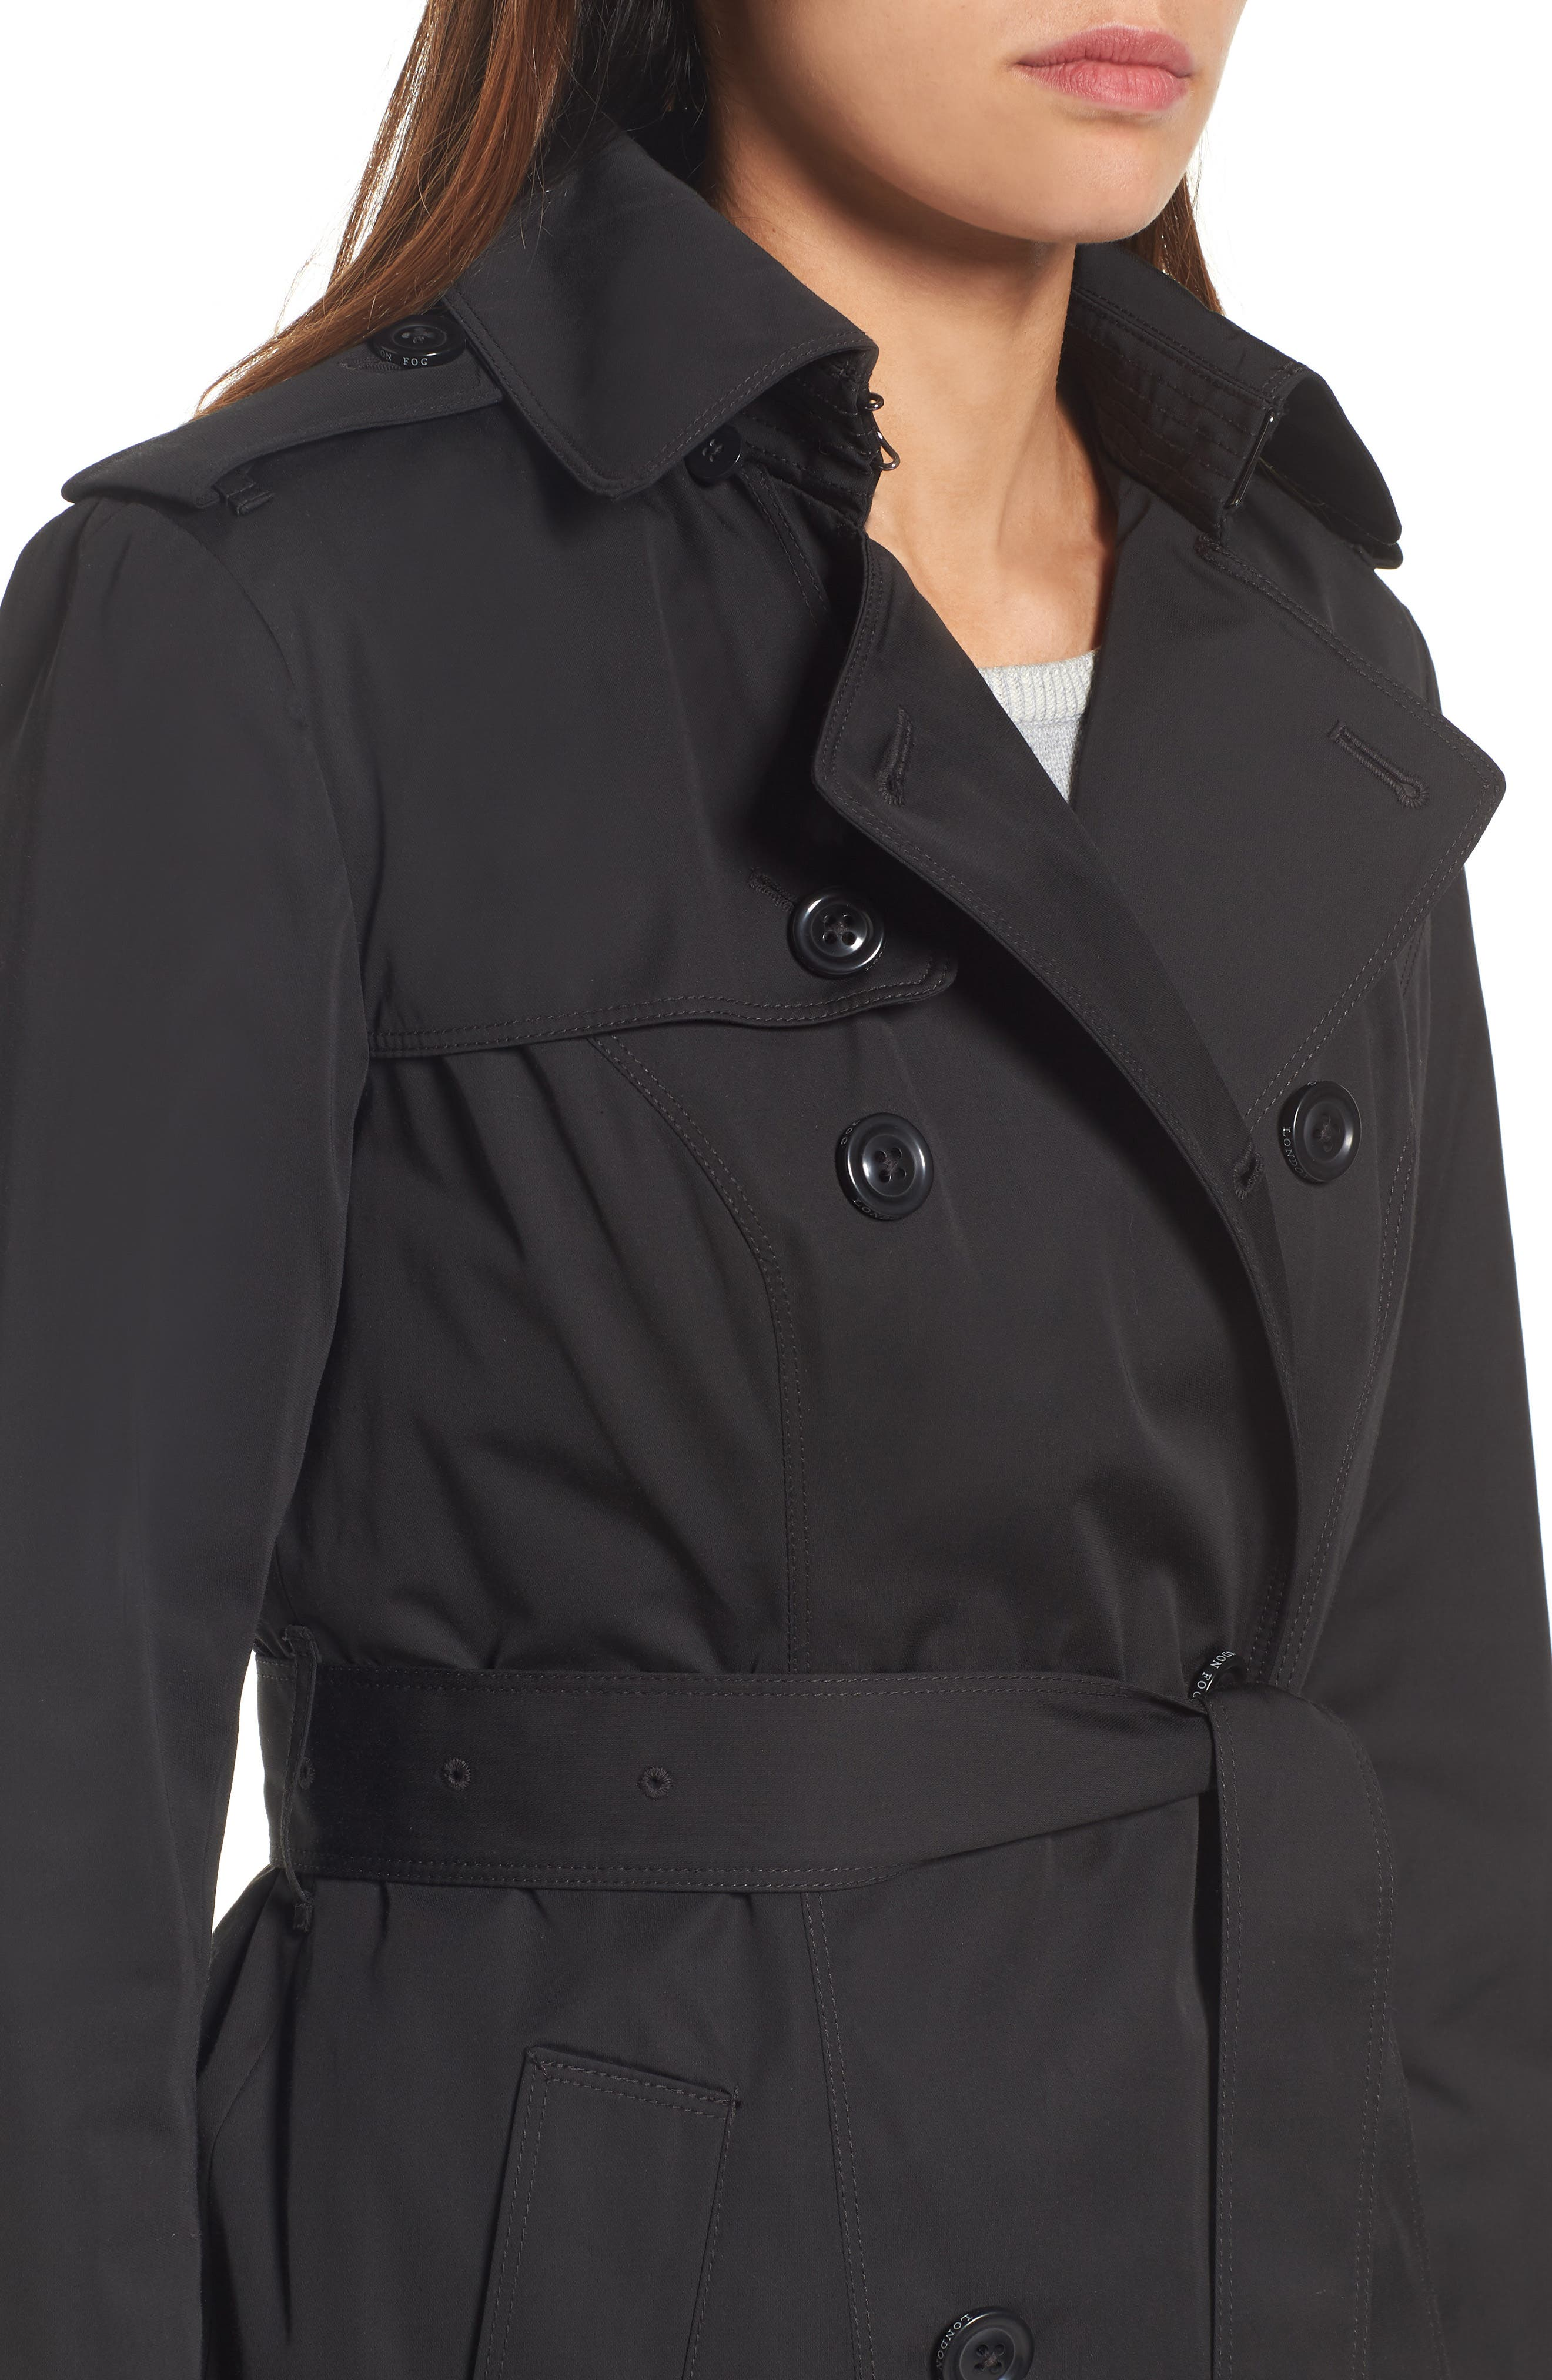 Alternate Image 3  - London Fog Heritage Trench Coat with Detachable Liner (Regular & Petite) (Nordstrom Exclusive)